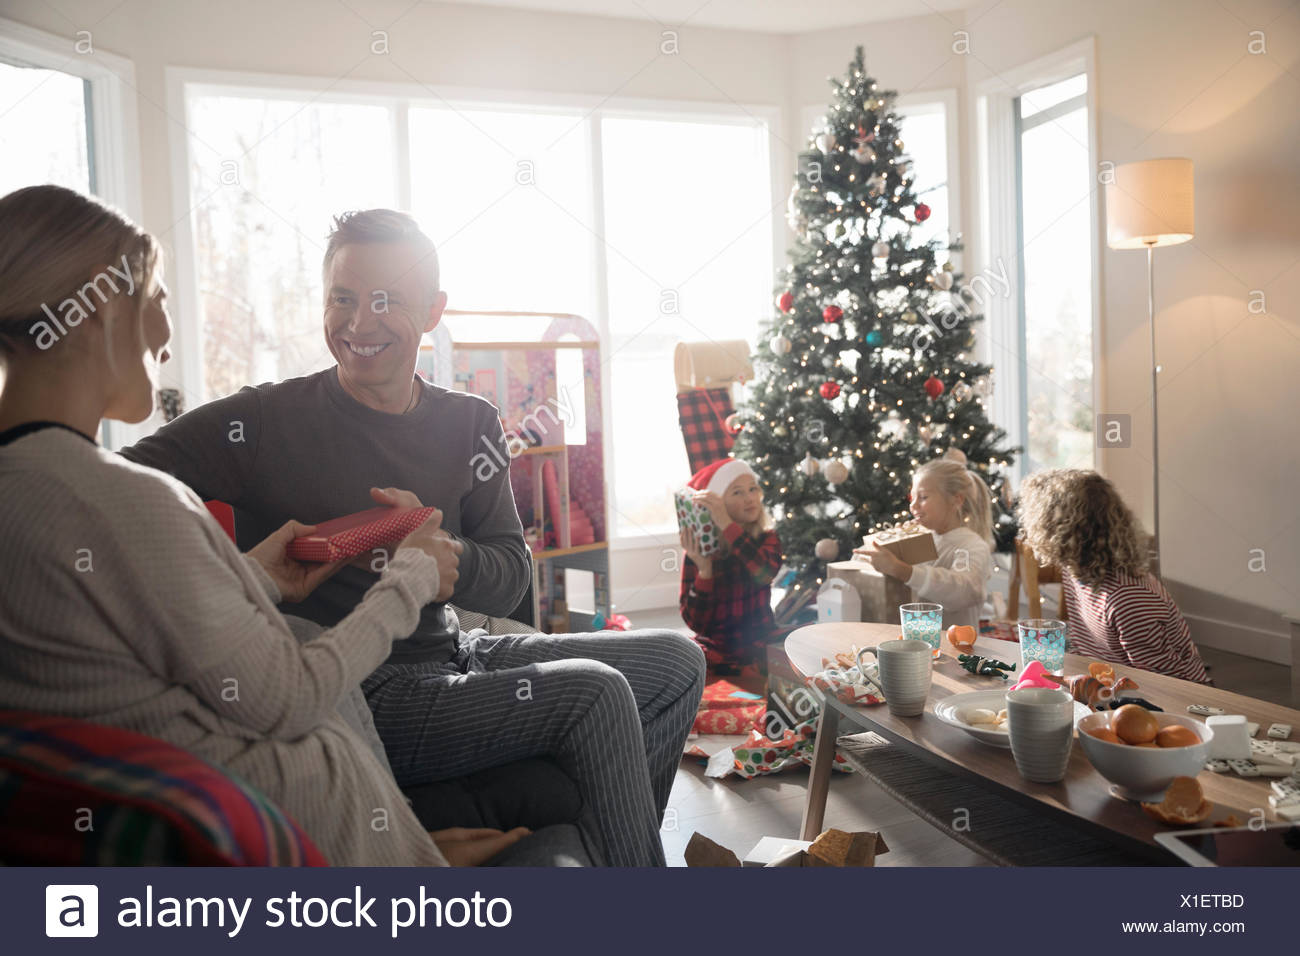 husband giving christmas gift to wife in living room with family